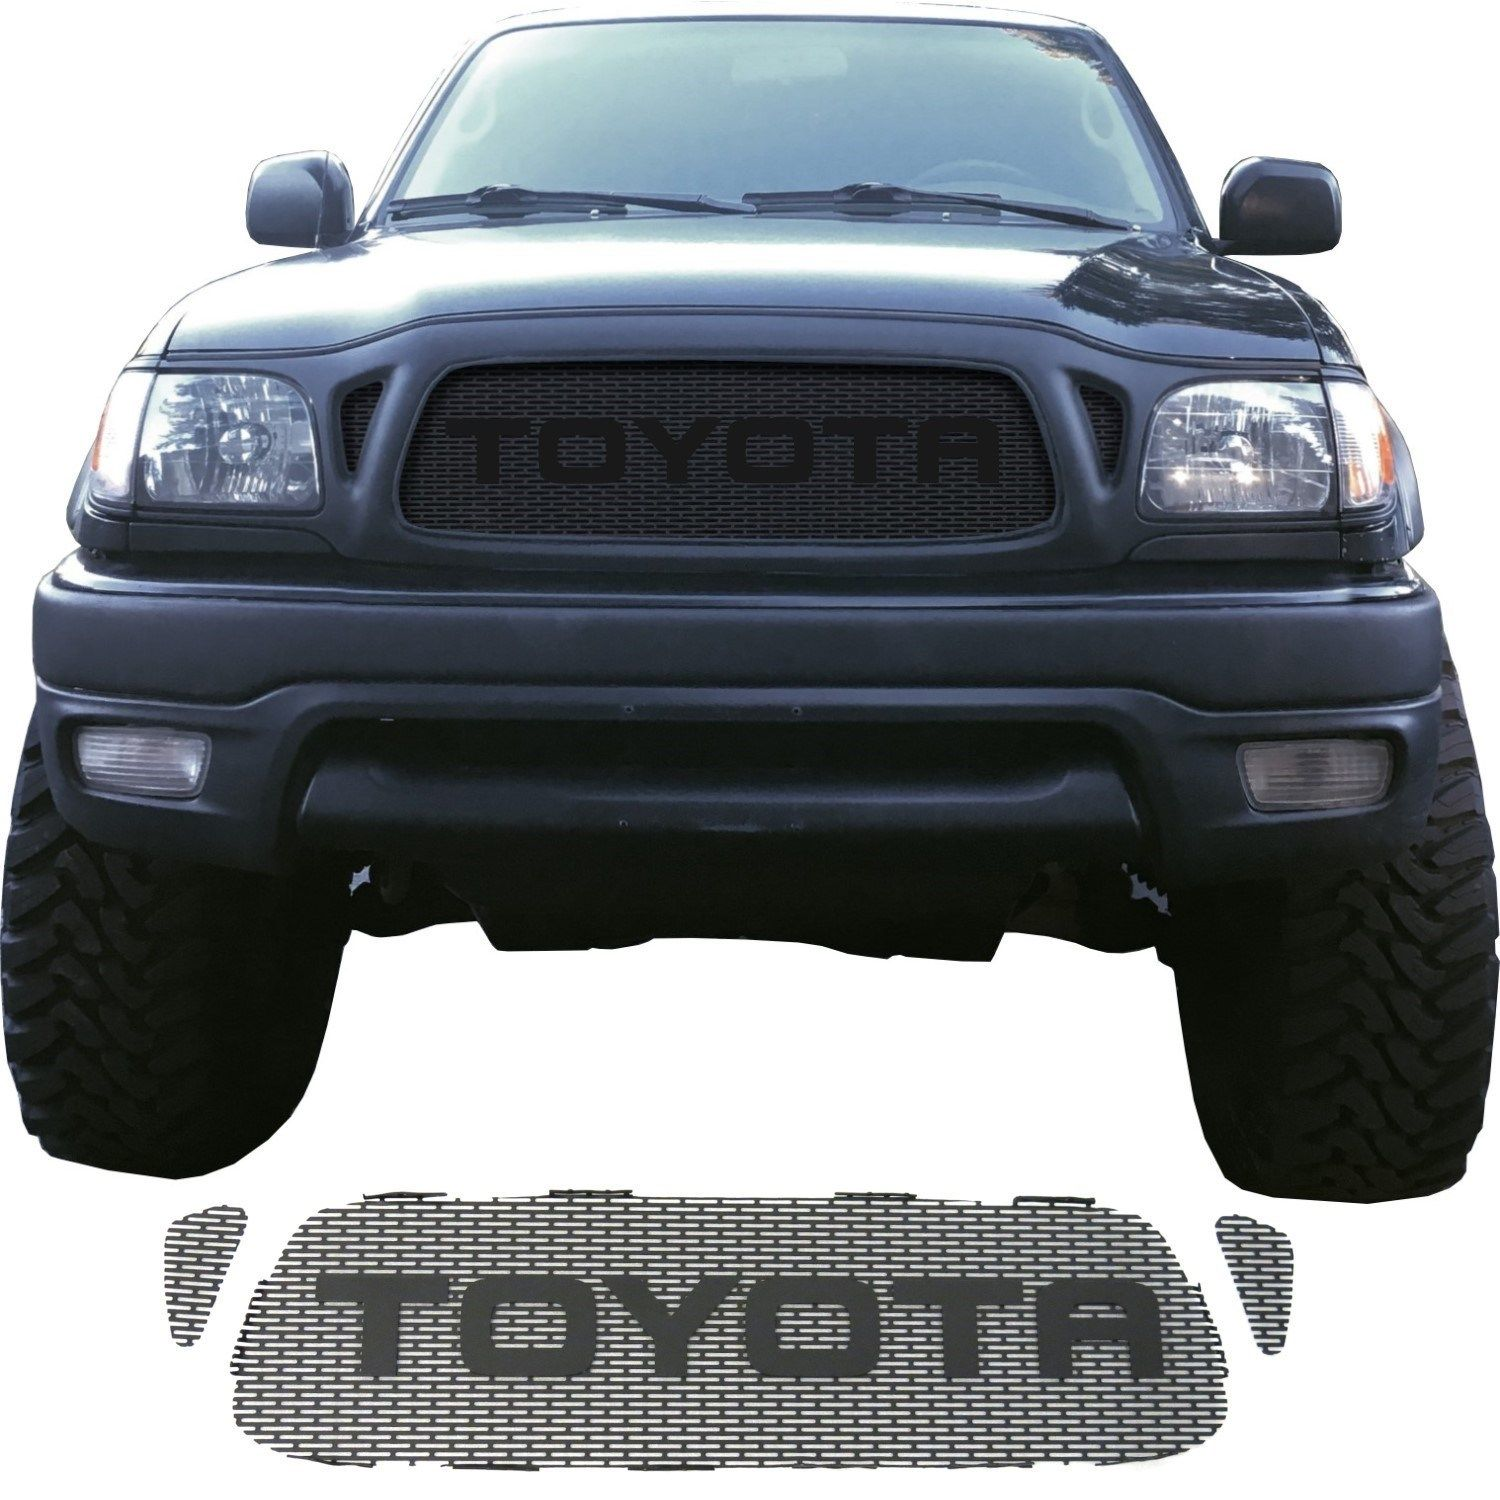 2001 04 Toyota Tacoma Grill Mesh With Rounded Letters Toyota Tacoma 2004 Toyota Tacoma Tacoma Grill